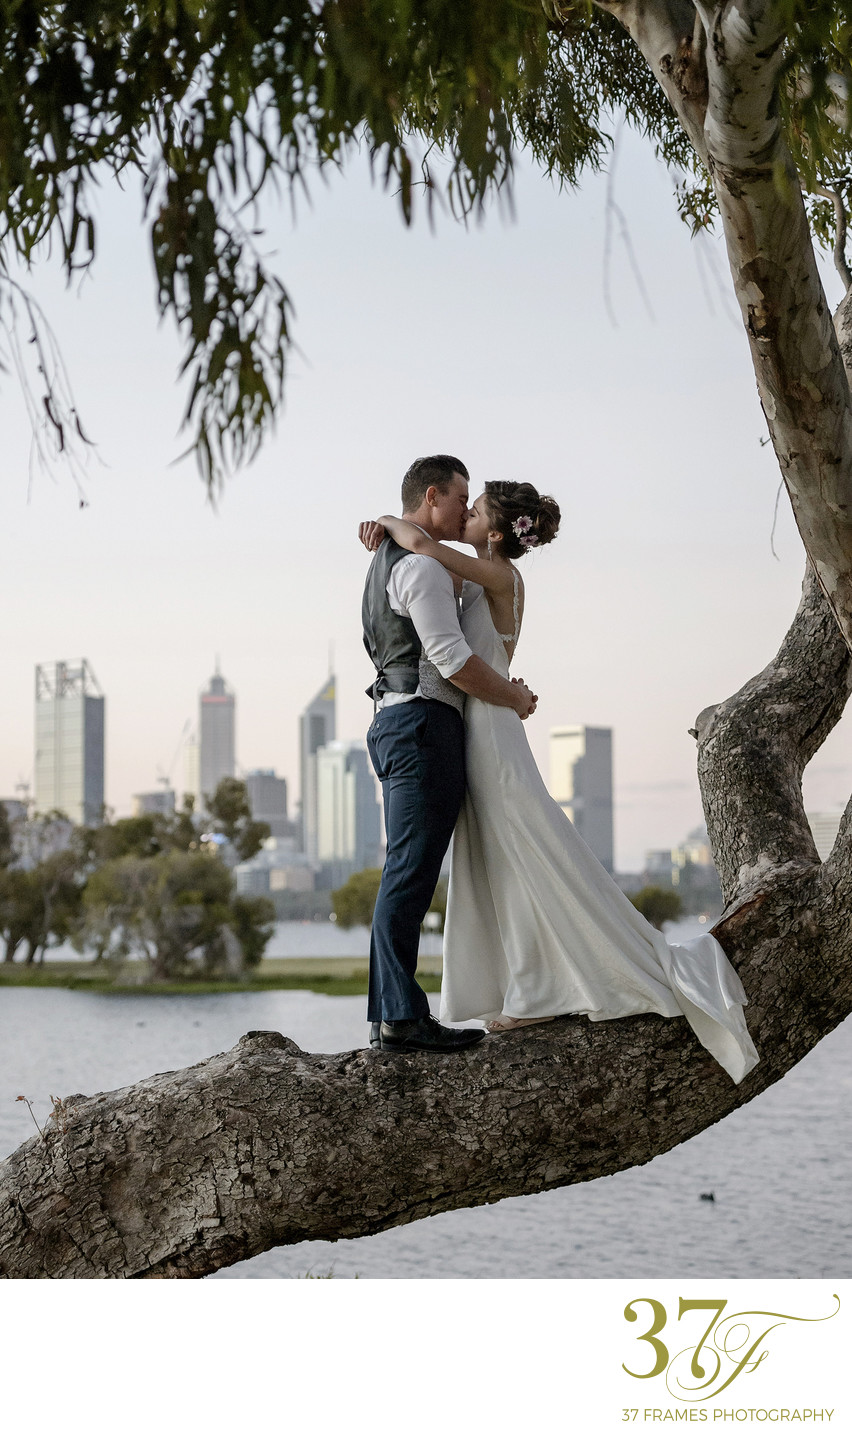 7 NATURAL POSING TIPS FOR YOUR WEDDING PHOTOS